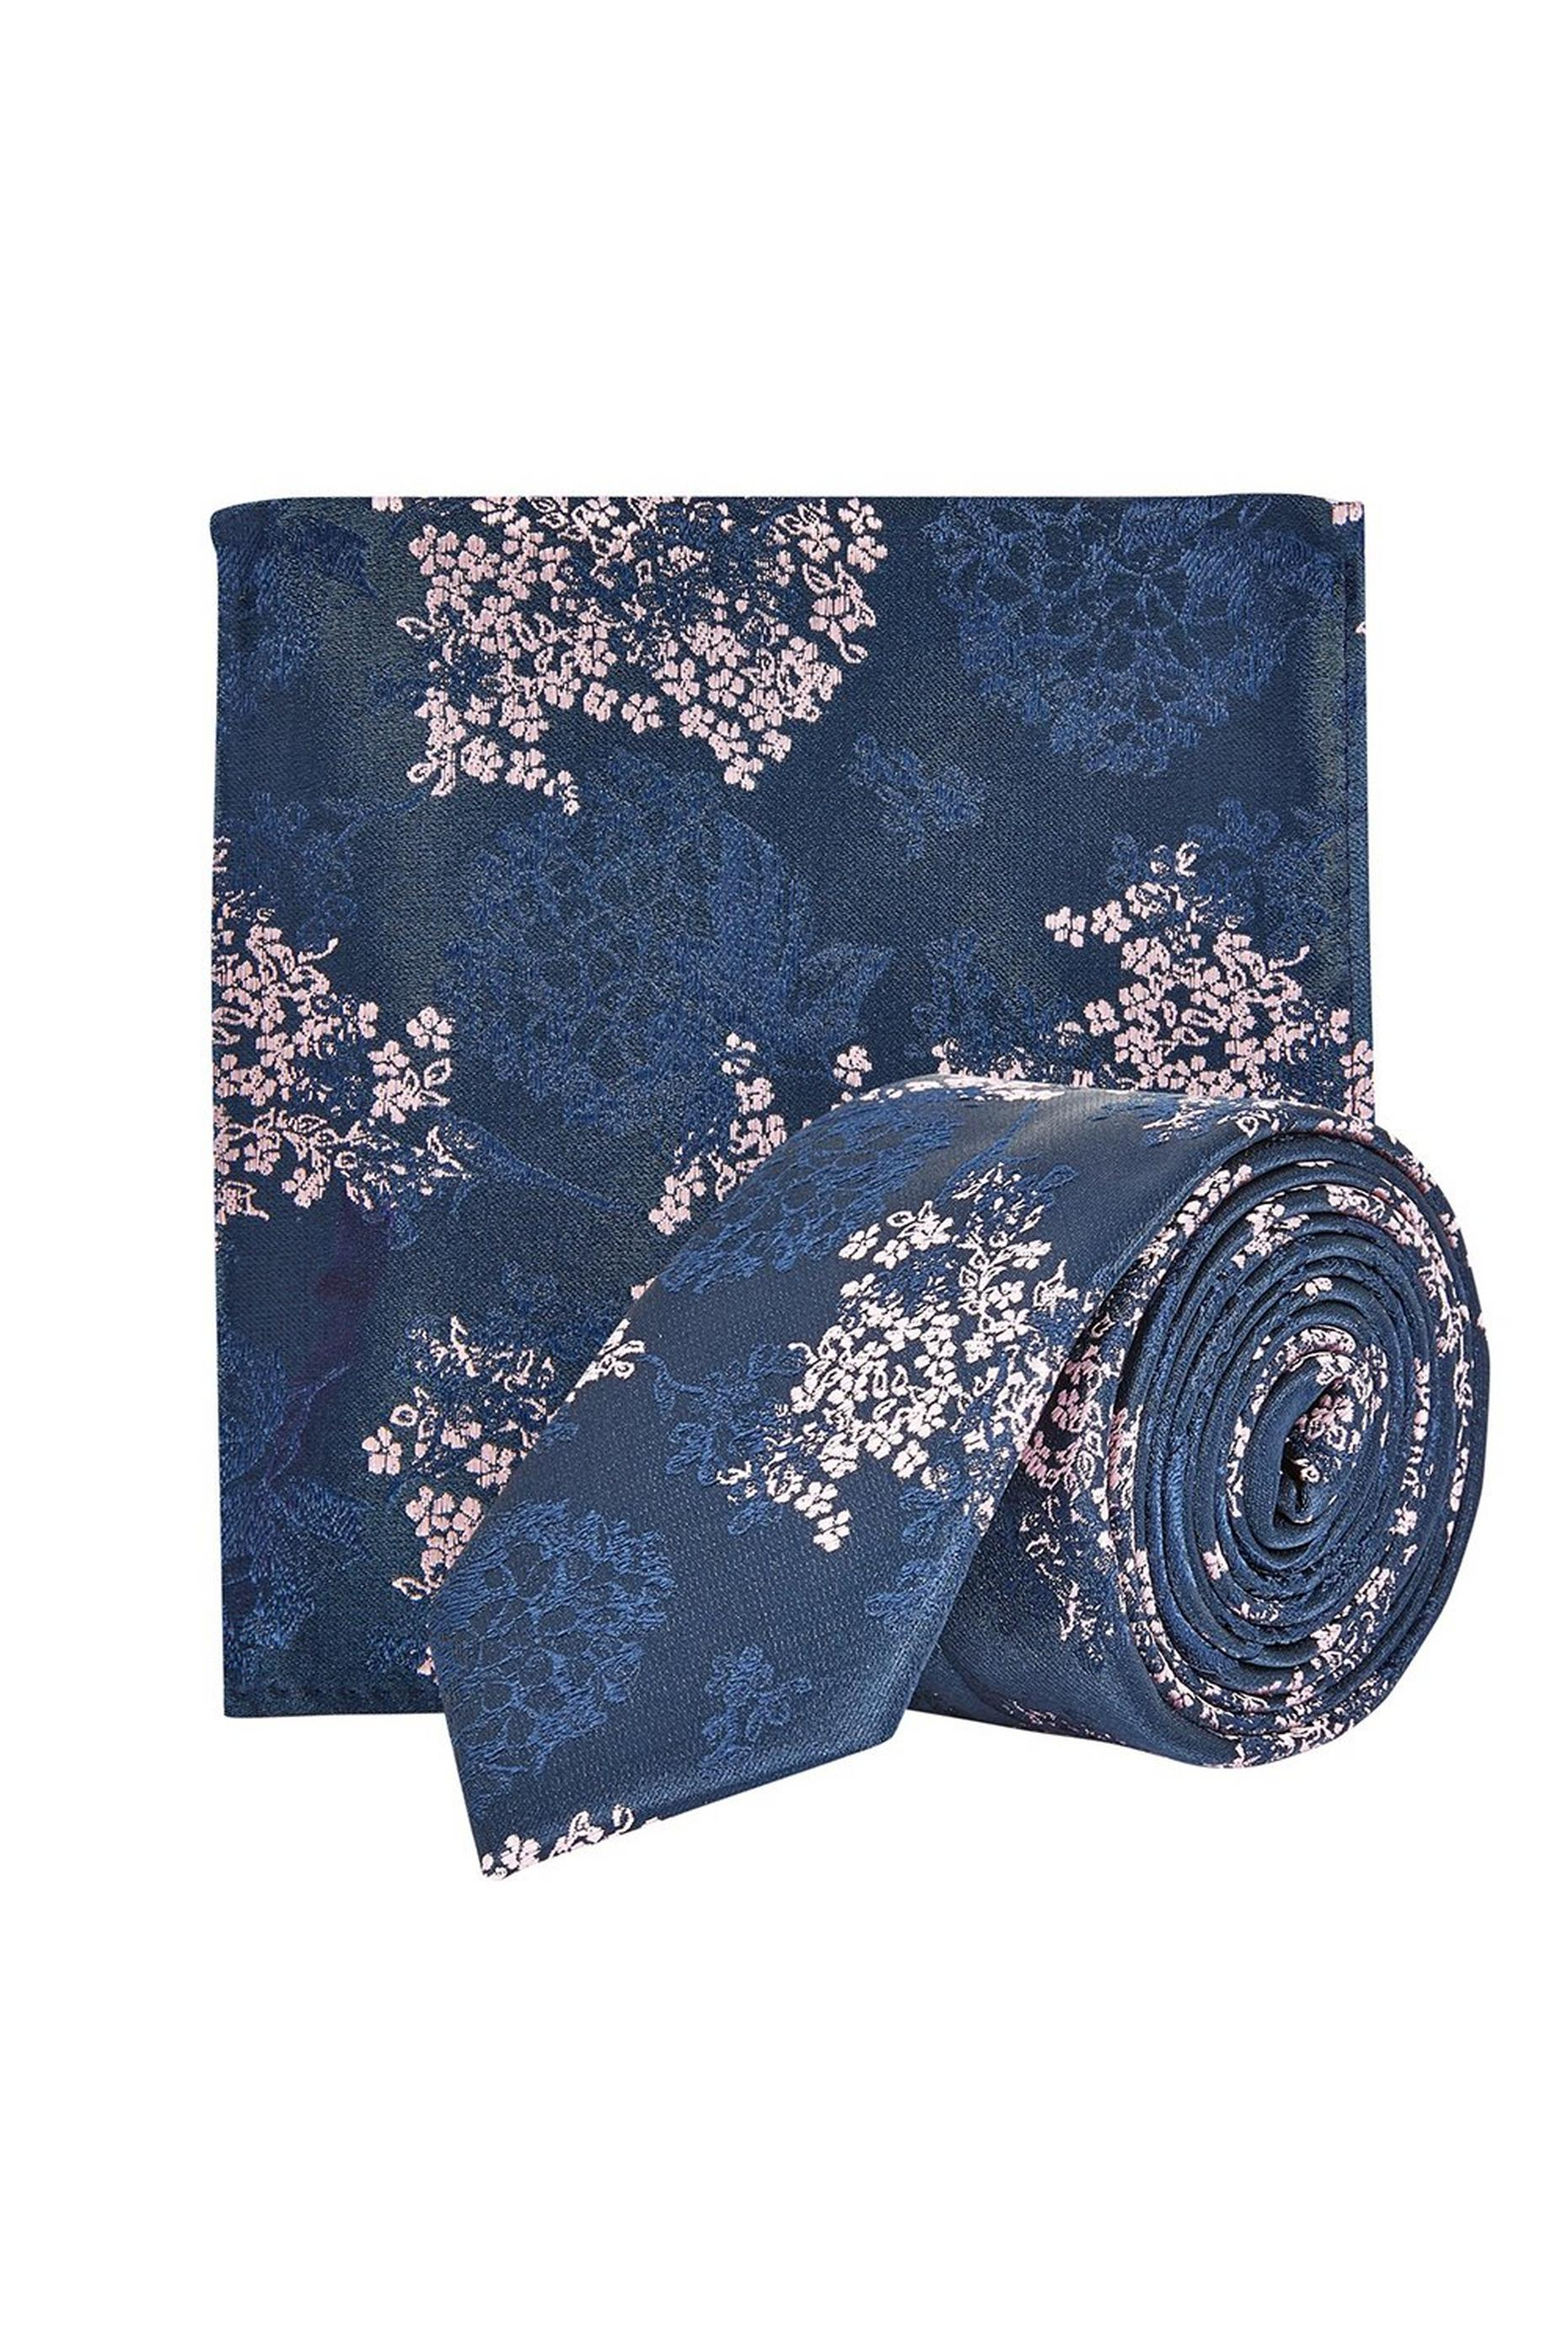 Floral Tie With Matching Pocket Square